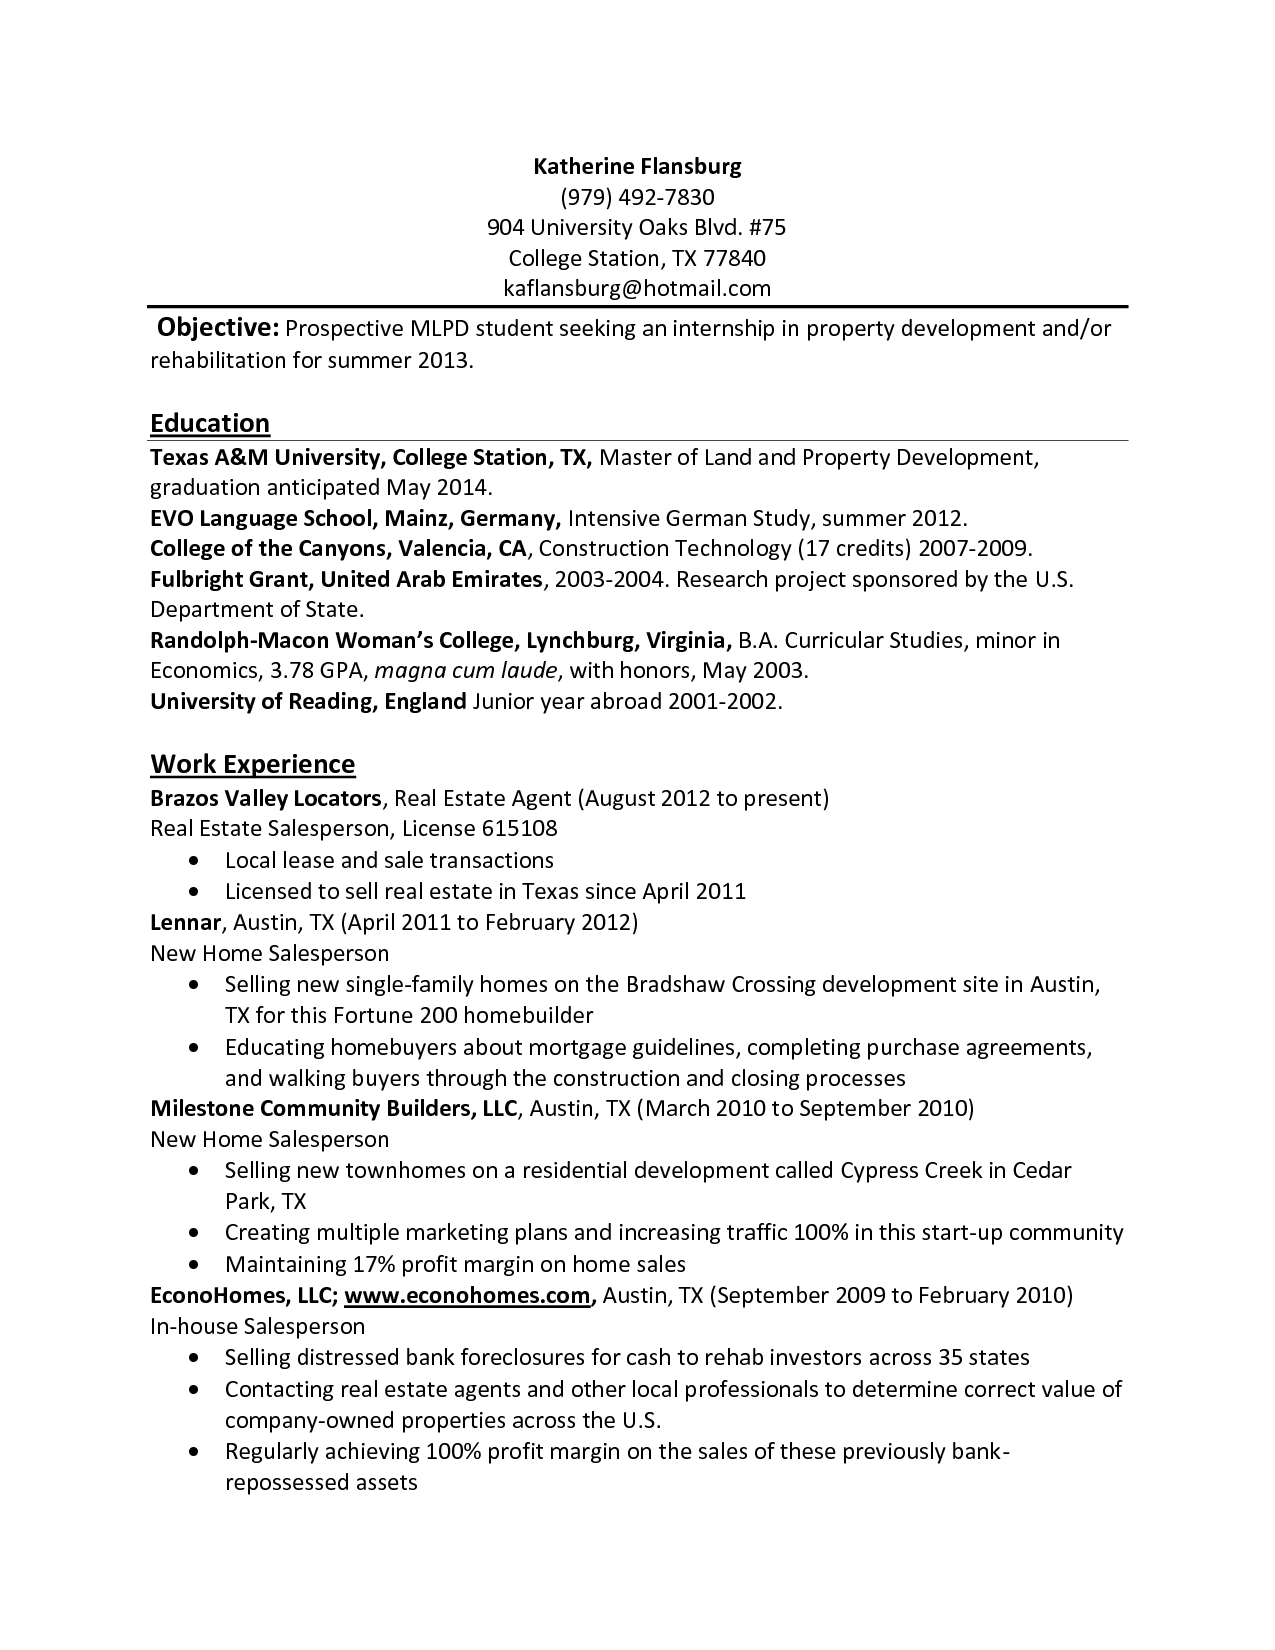 Objective For Teaching Resume Custom Resume For Undergraduate Psychology Students Guide To The Resume Design Inspiration